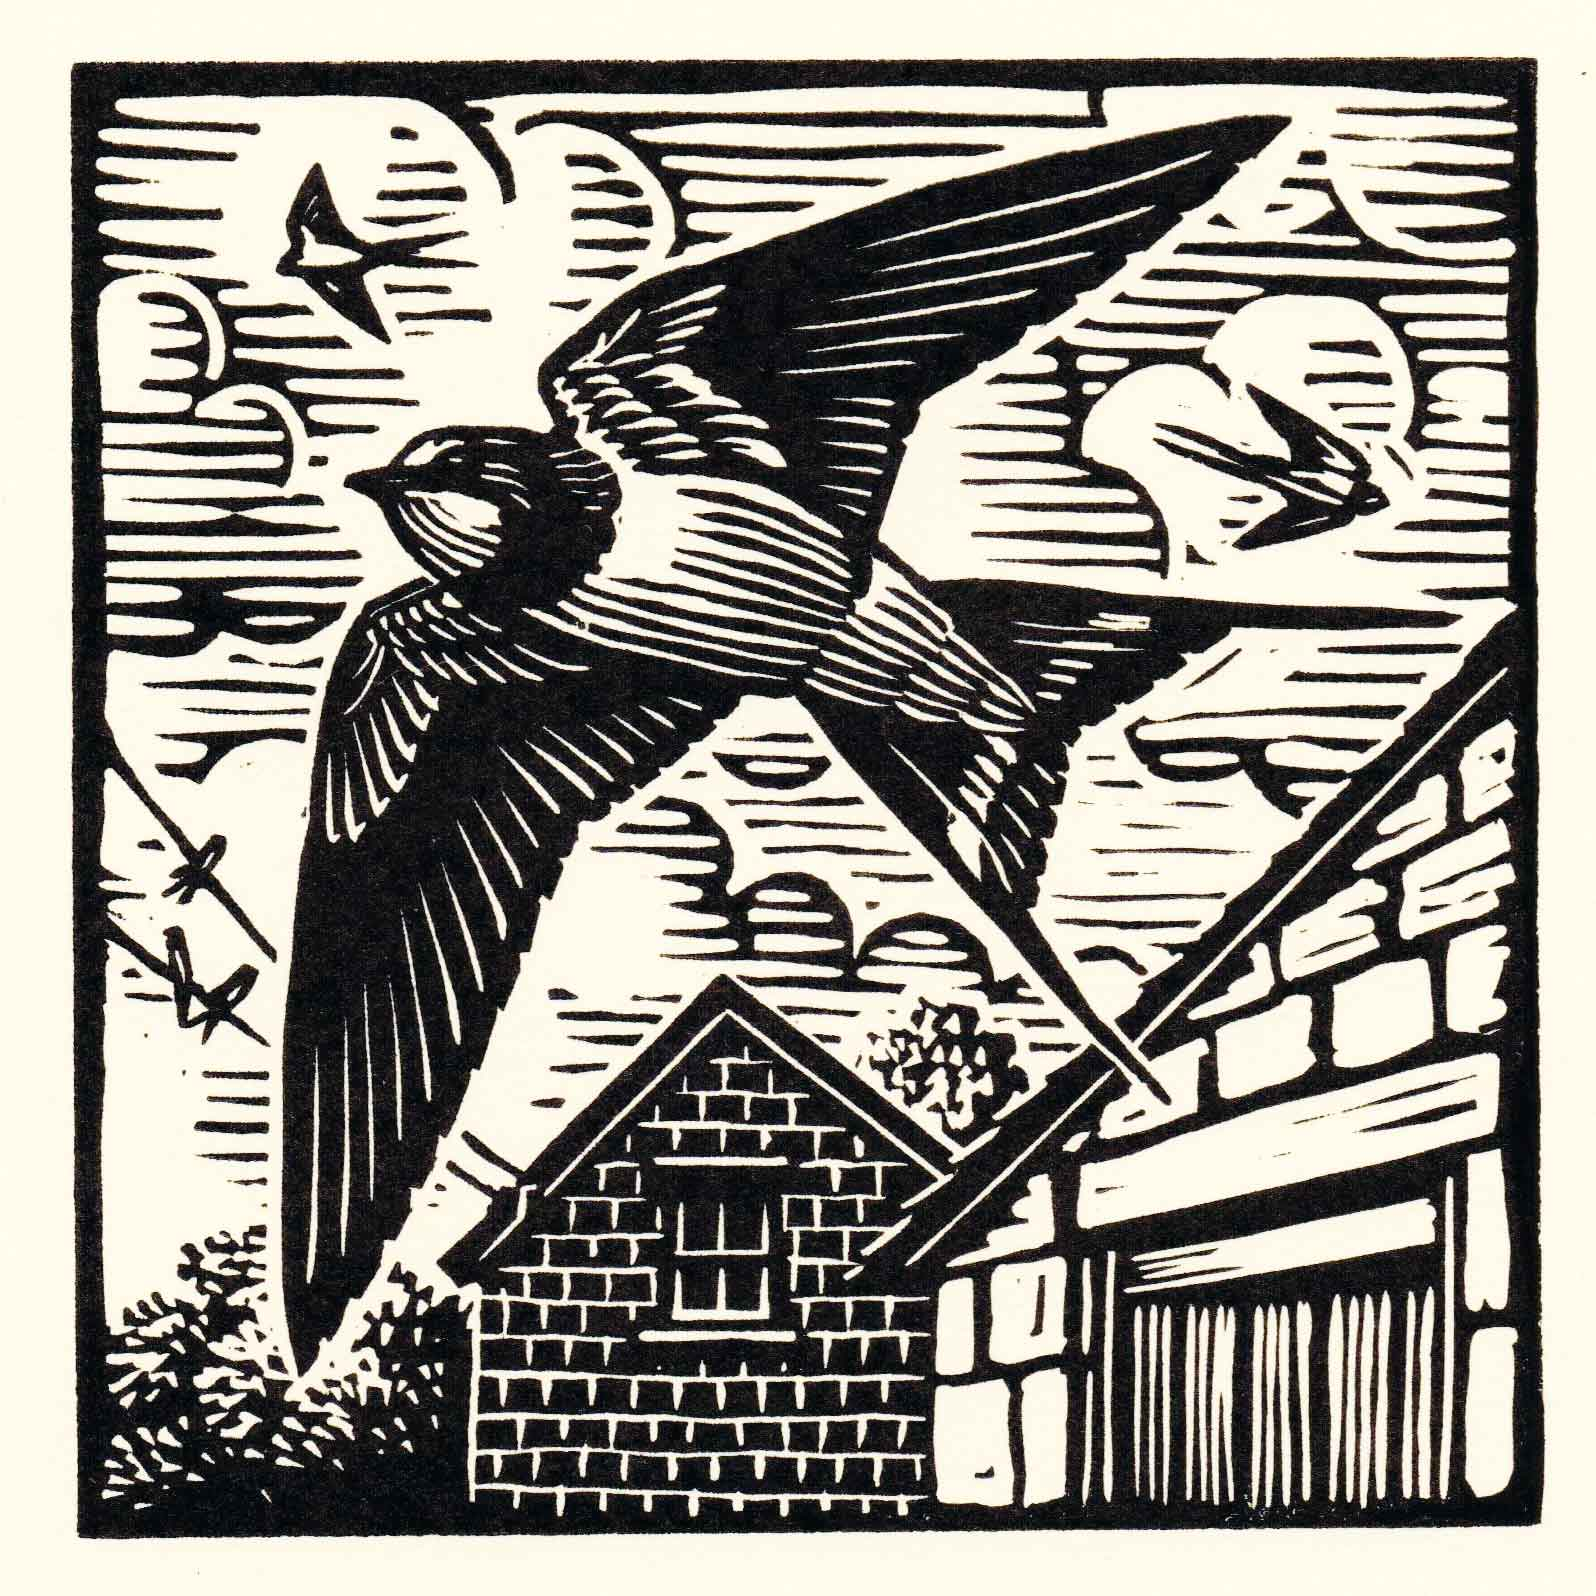 Art Greeting Card by Richard Allen, Linocut, Swallows in the sky